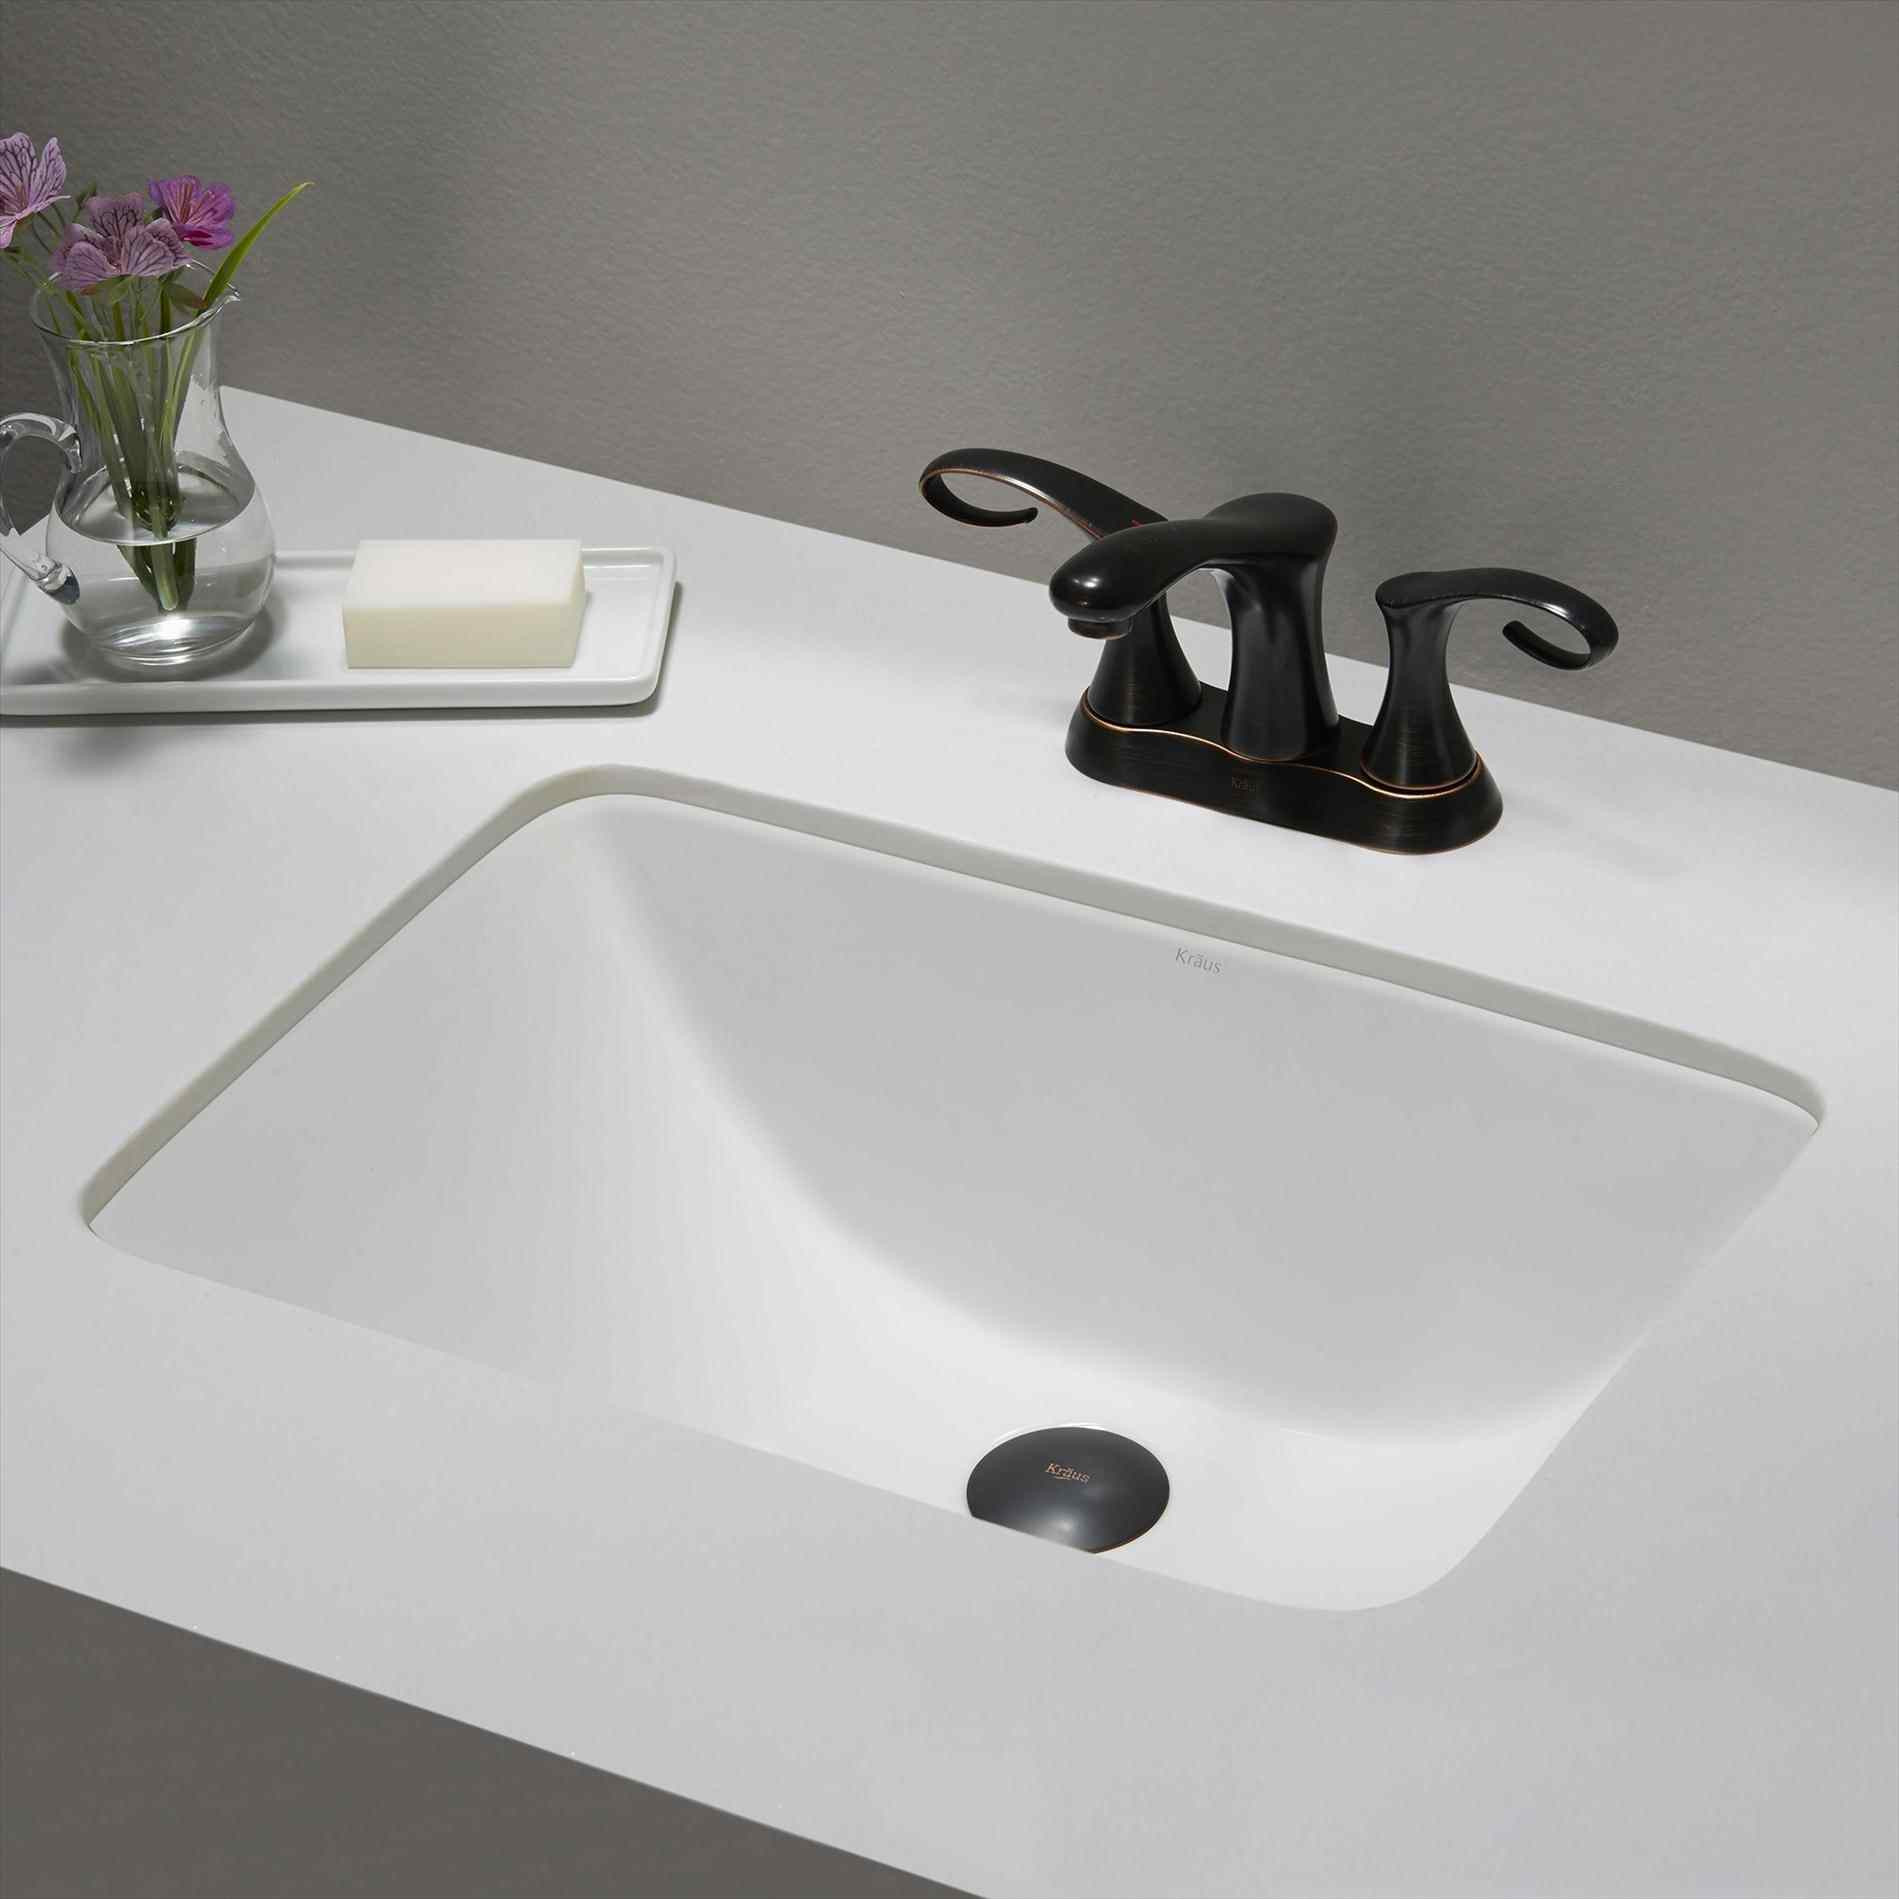 Best ideas about Home Depot Bathroom Sink . Save or Pin Bathroom Sinks Home Depot Now.